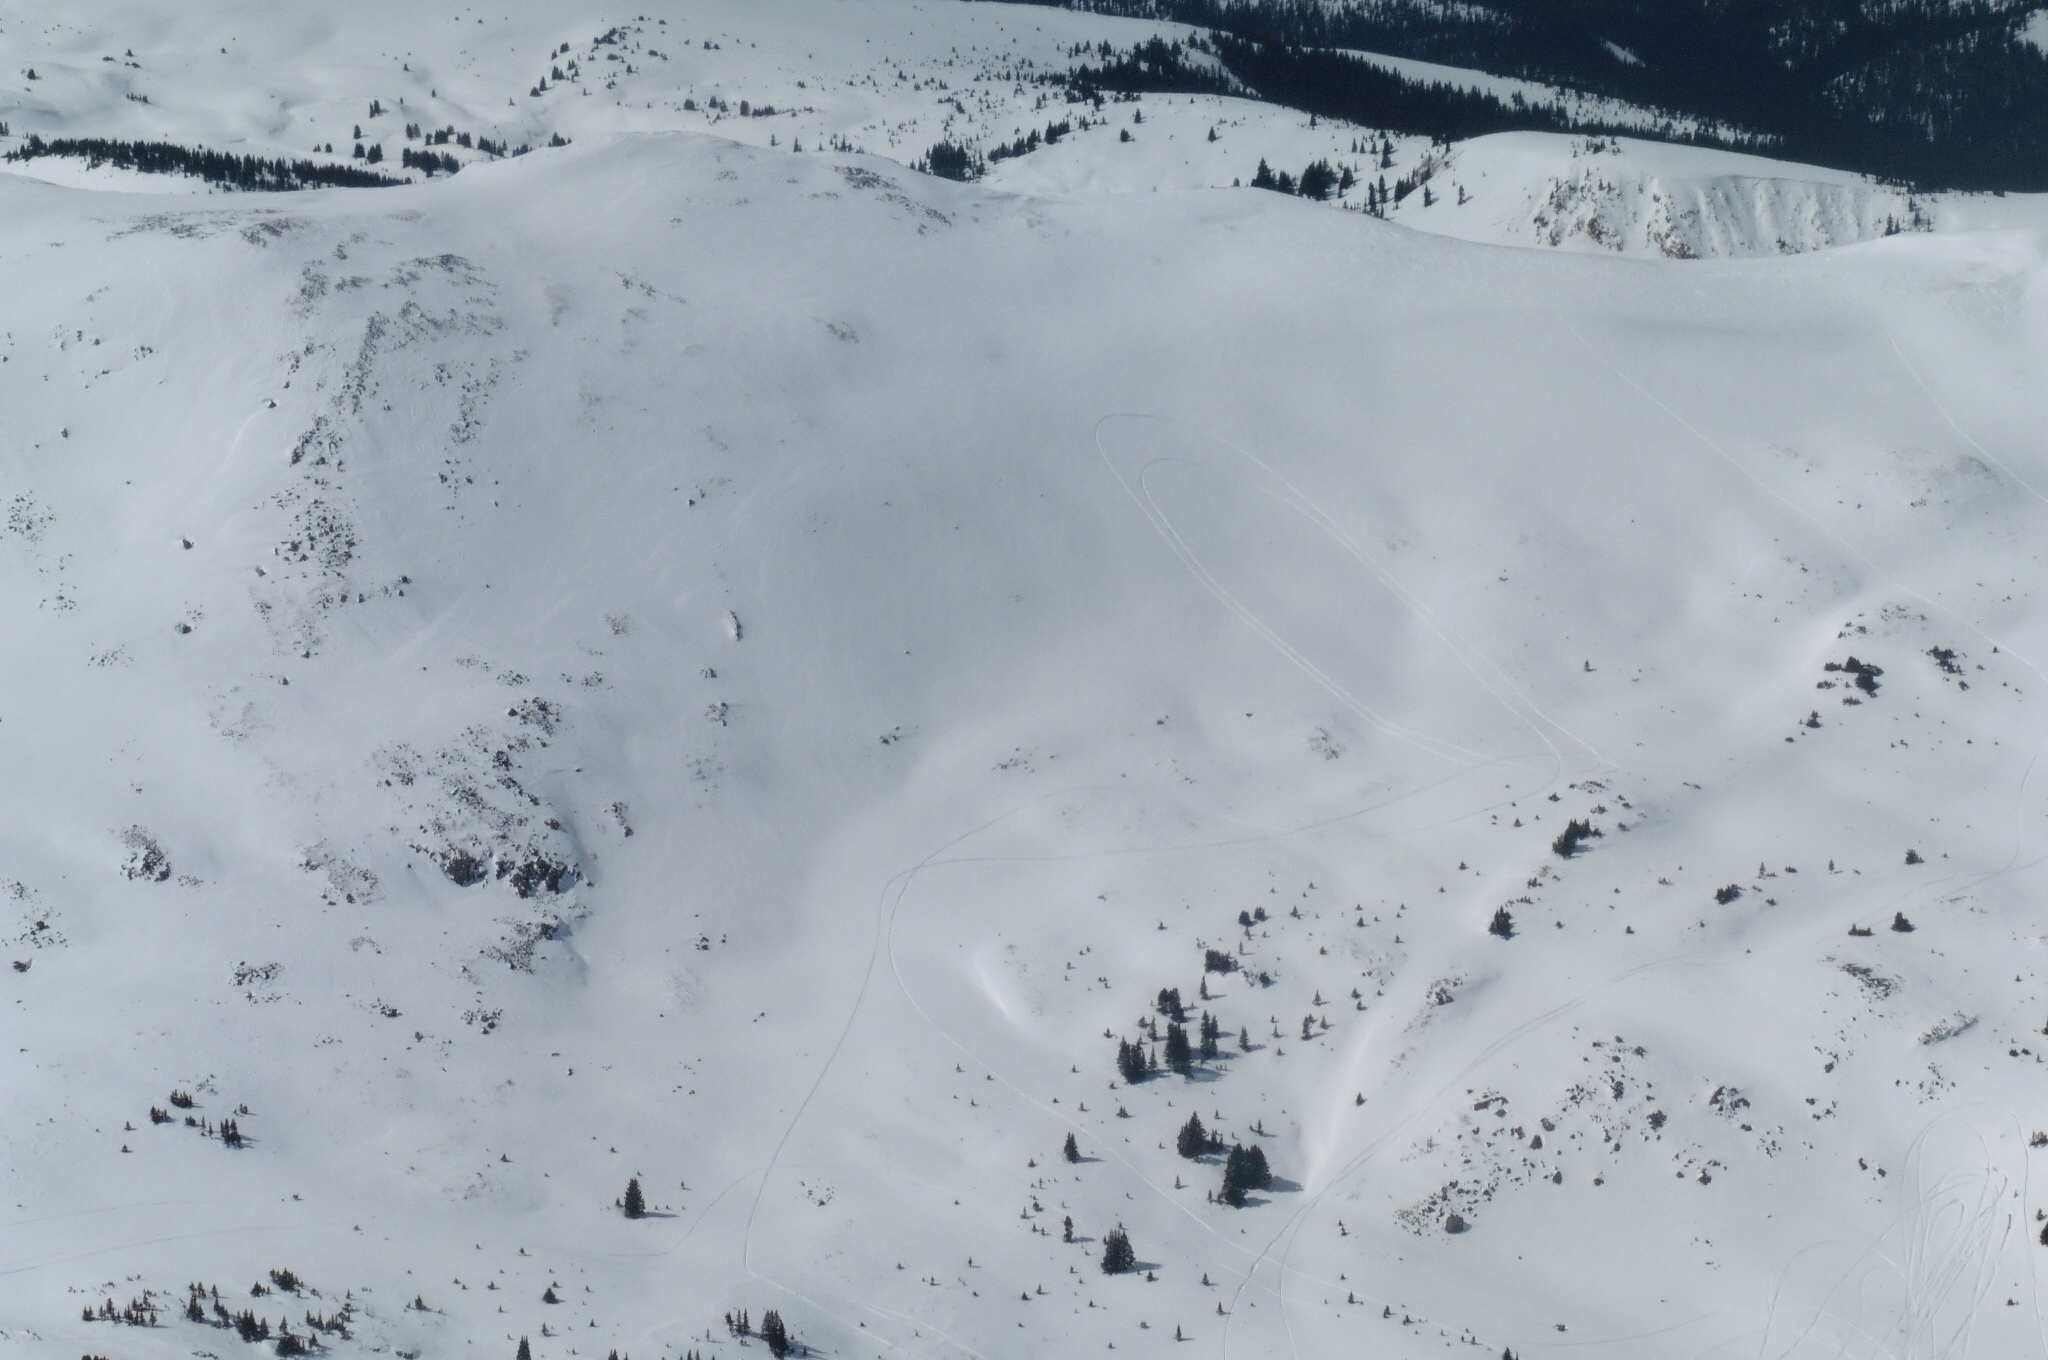 Snowmobilers... Crazy bastards. 35 degree slope? Check. Northern Aspect? Check. High Avy Danger? Check. Let's ride!